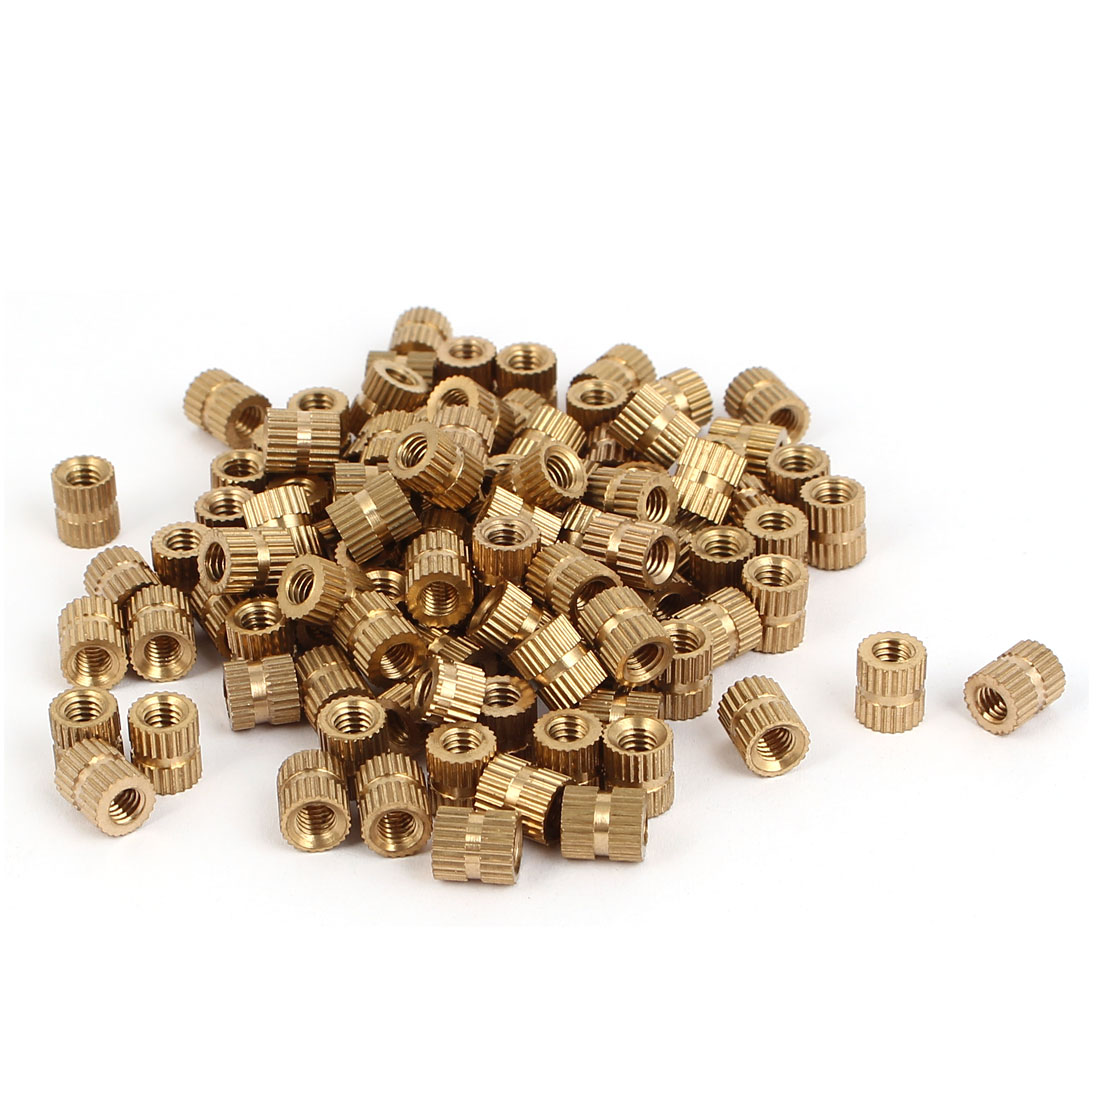 M4 x 7mm Brass Cylinder Injection Molding Knurled Threaded Embedment Nuts 100PCS